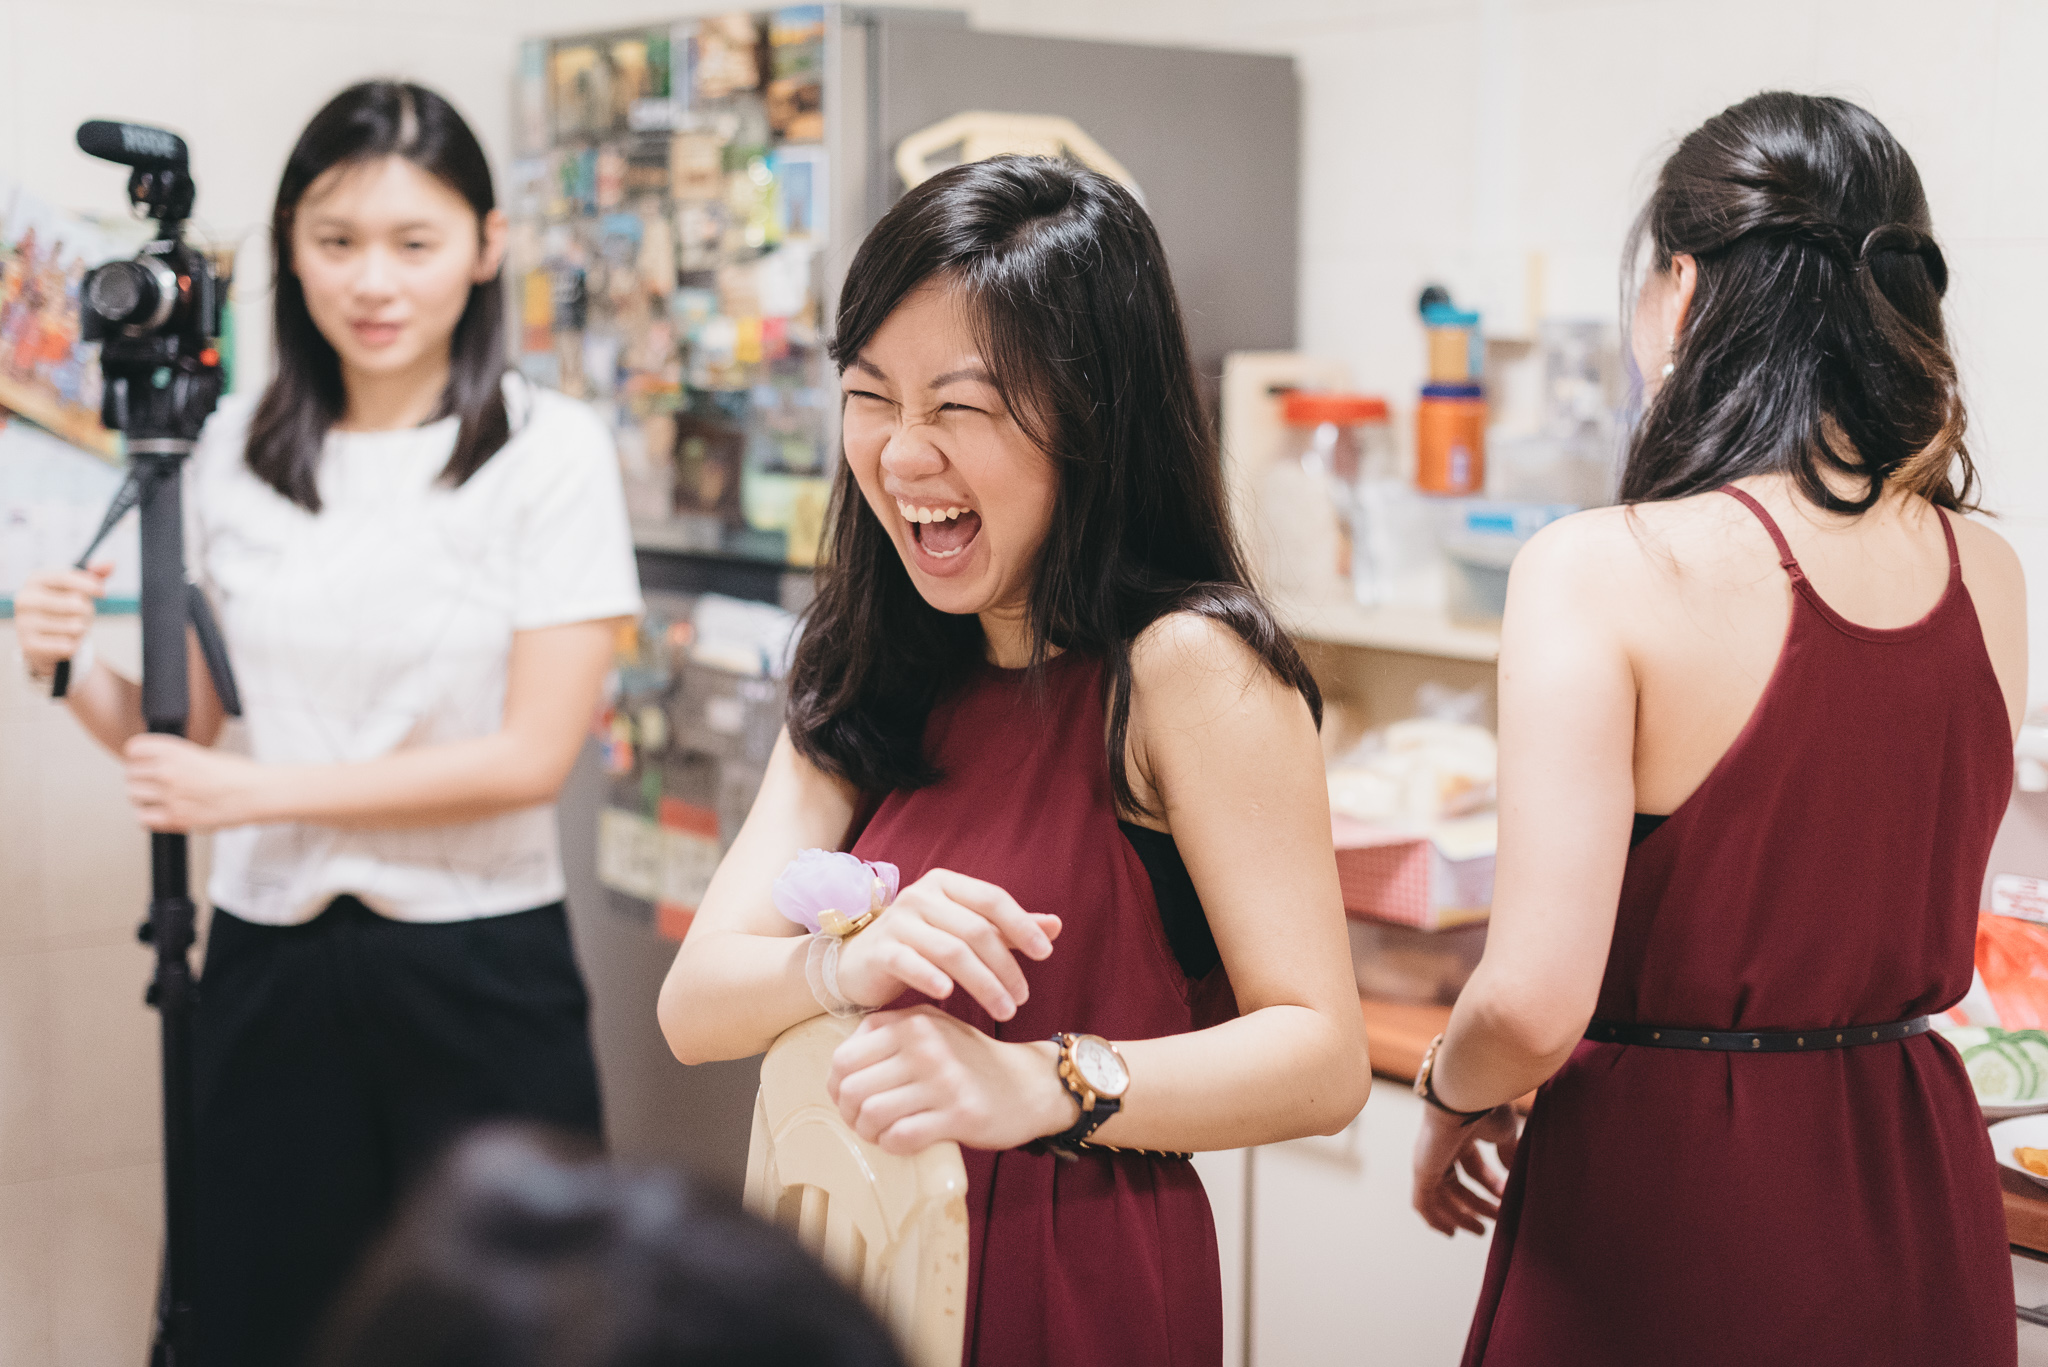 Fiona & Terence Wedding Day Highlights (resized for sharing) - 008.jpg